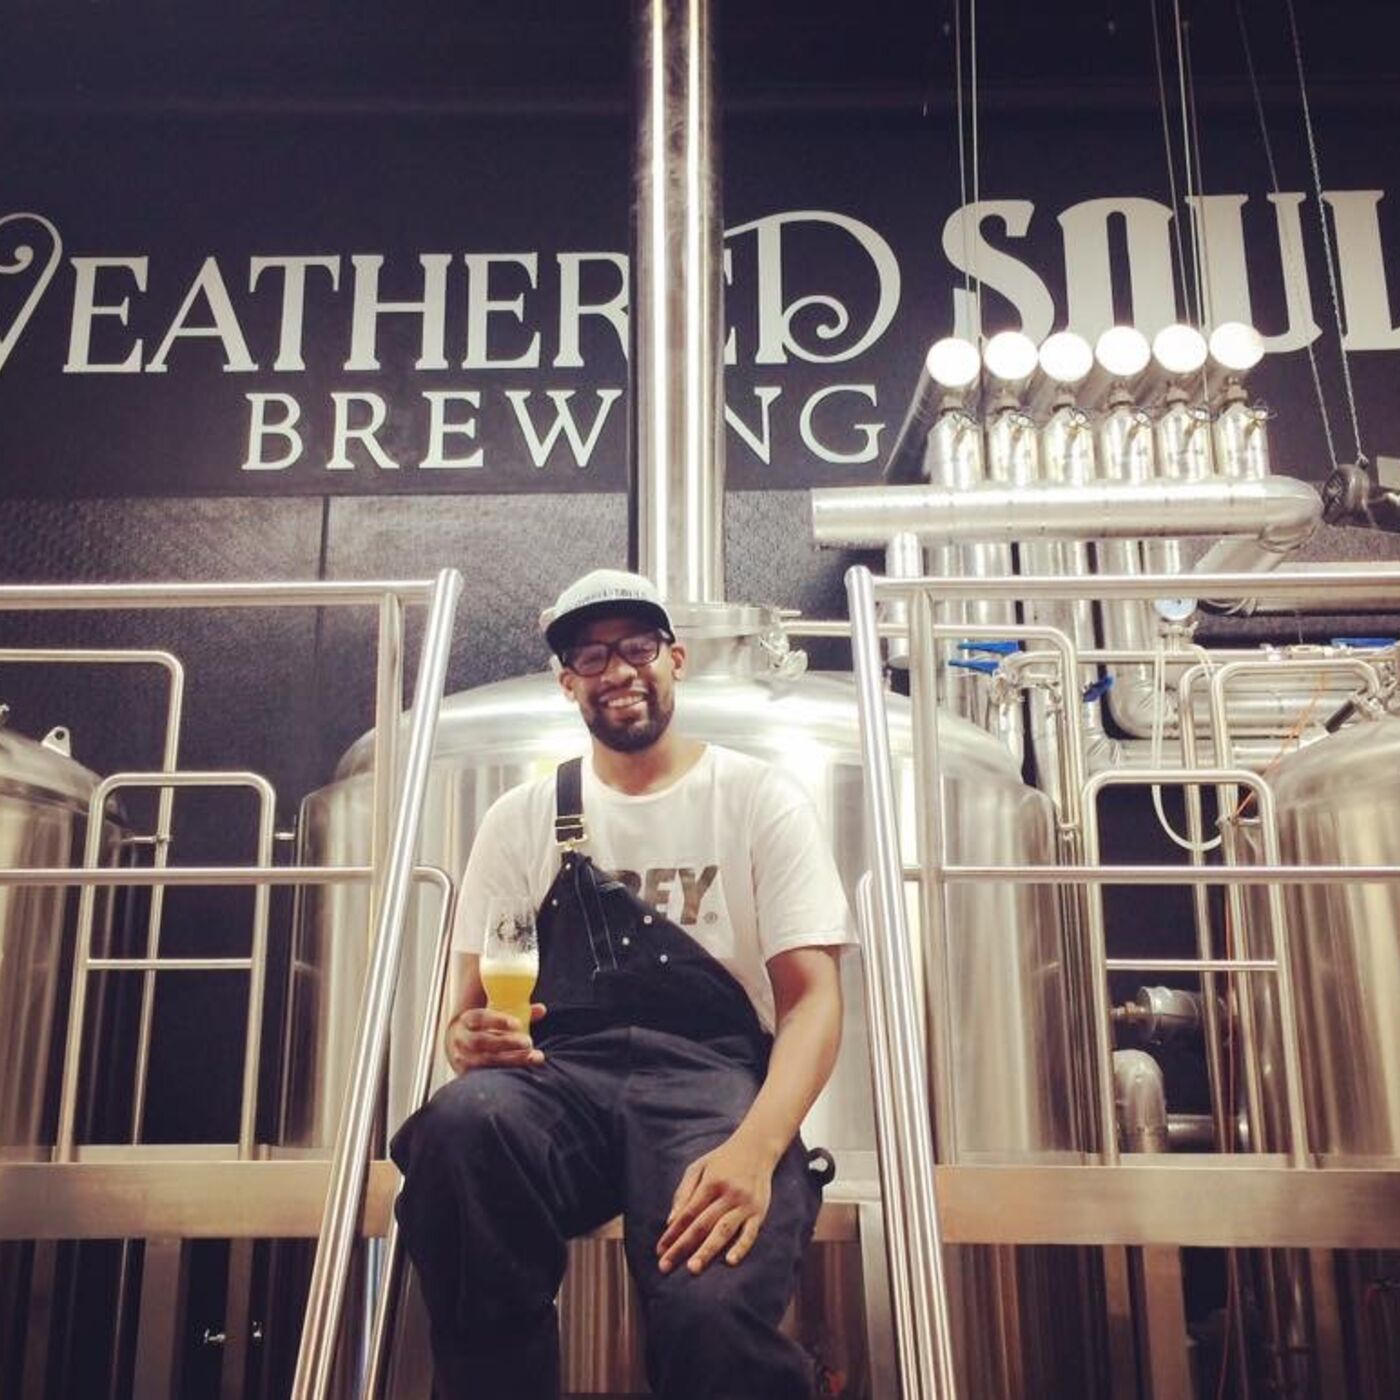 Inside the Brewery: Black is Beautiful